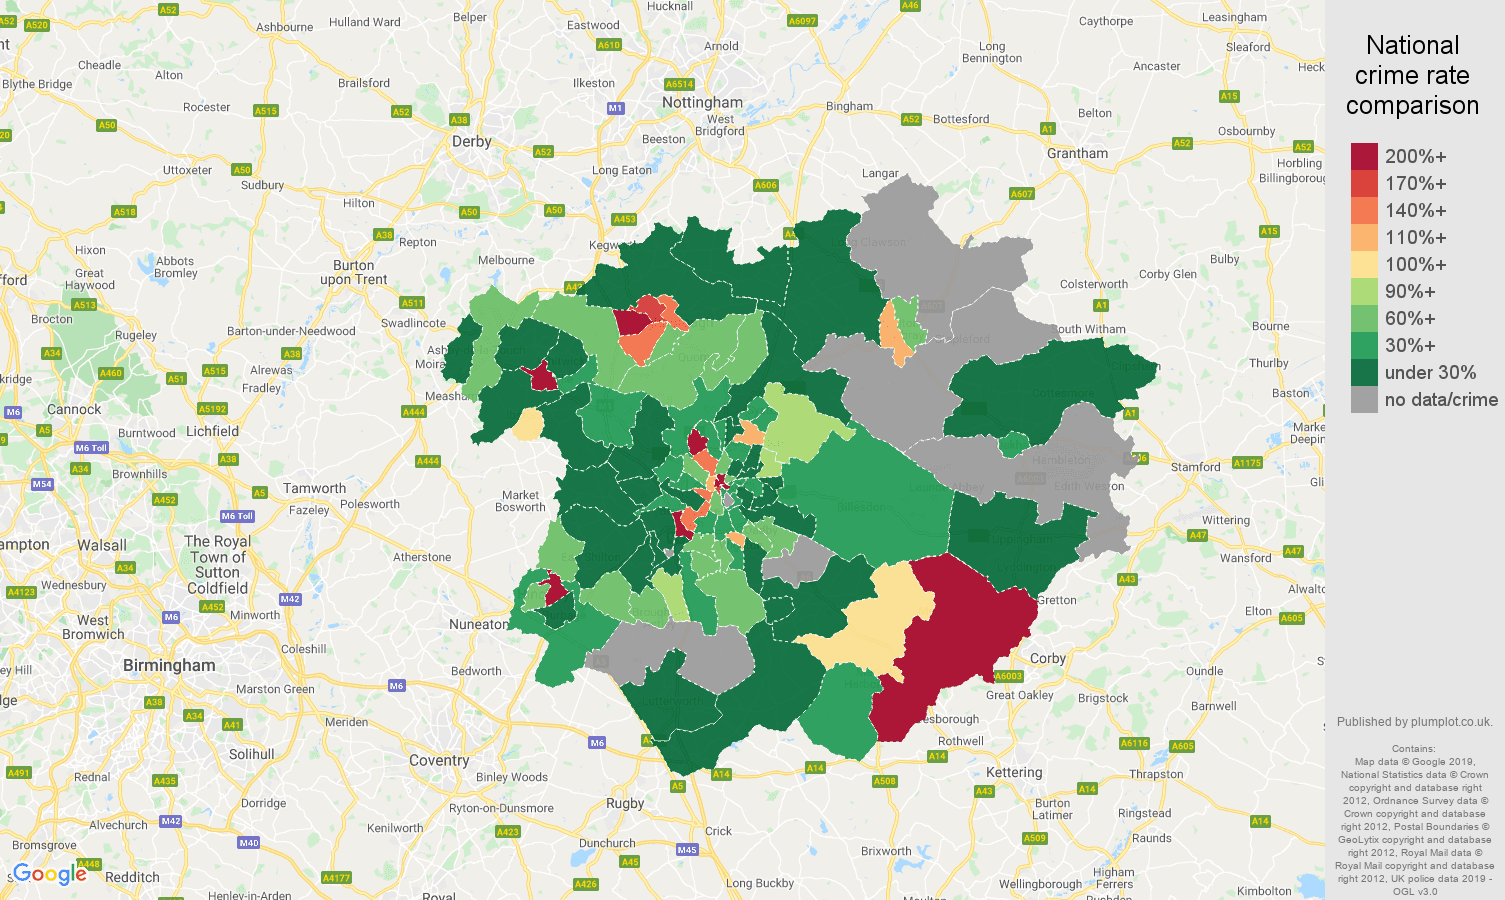 Leicester shoplifting crime rate comparison map